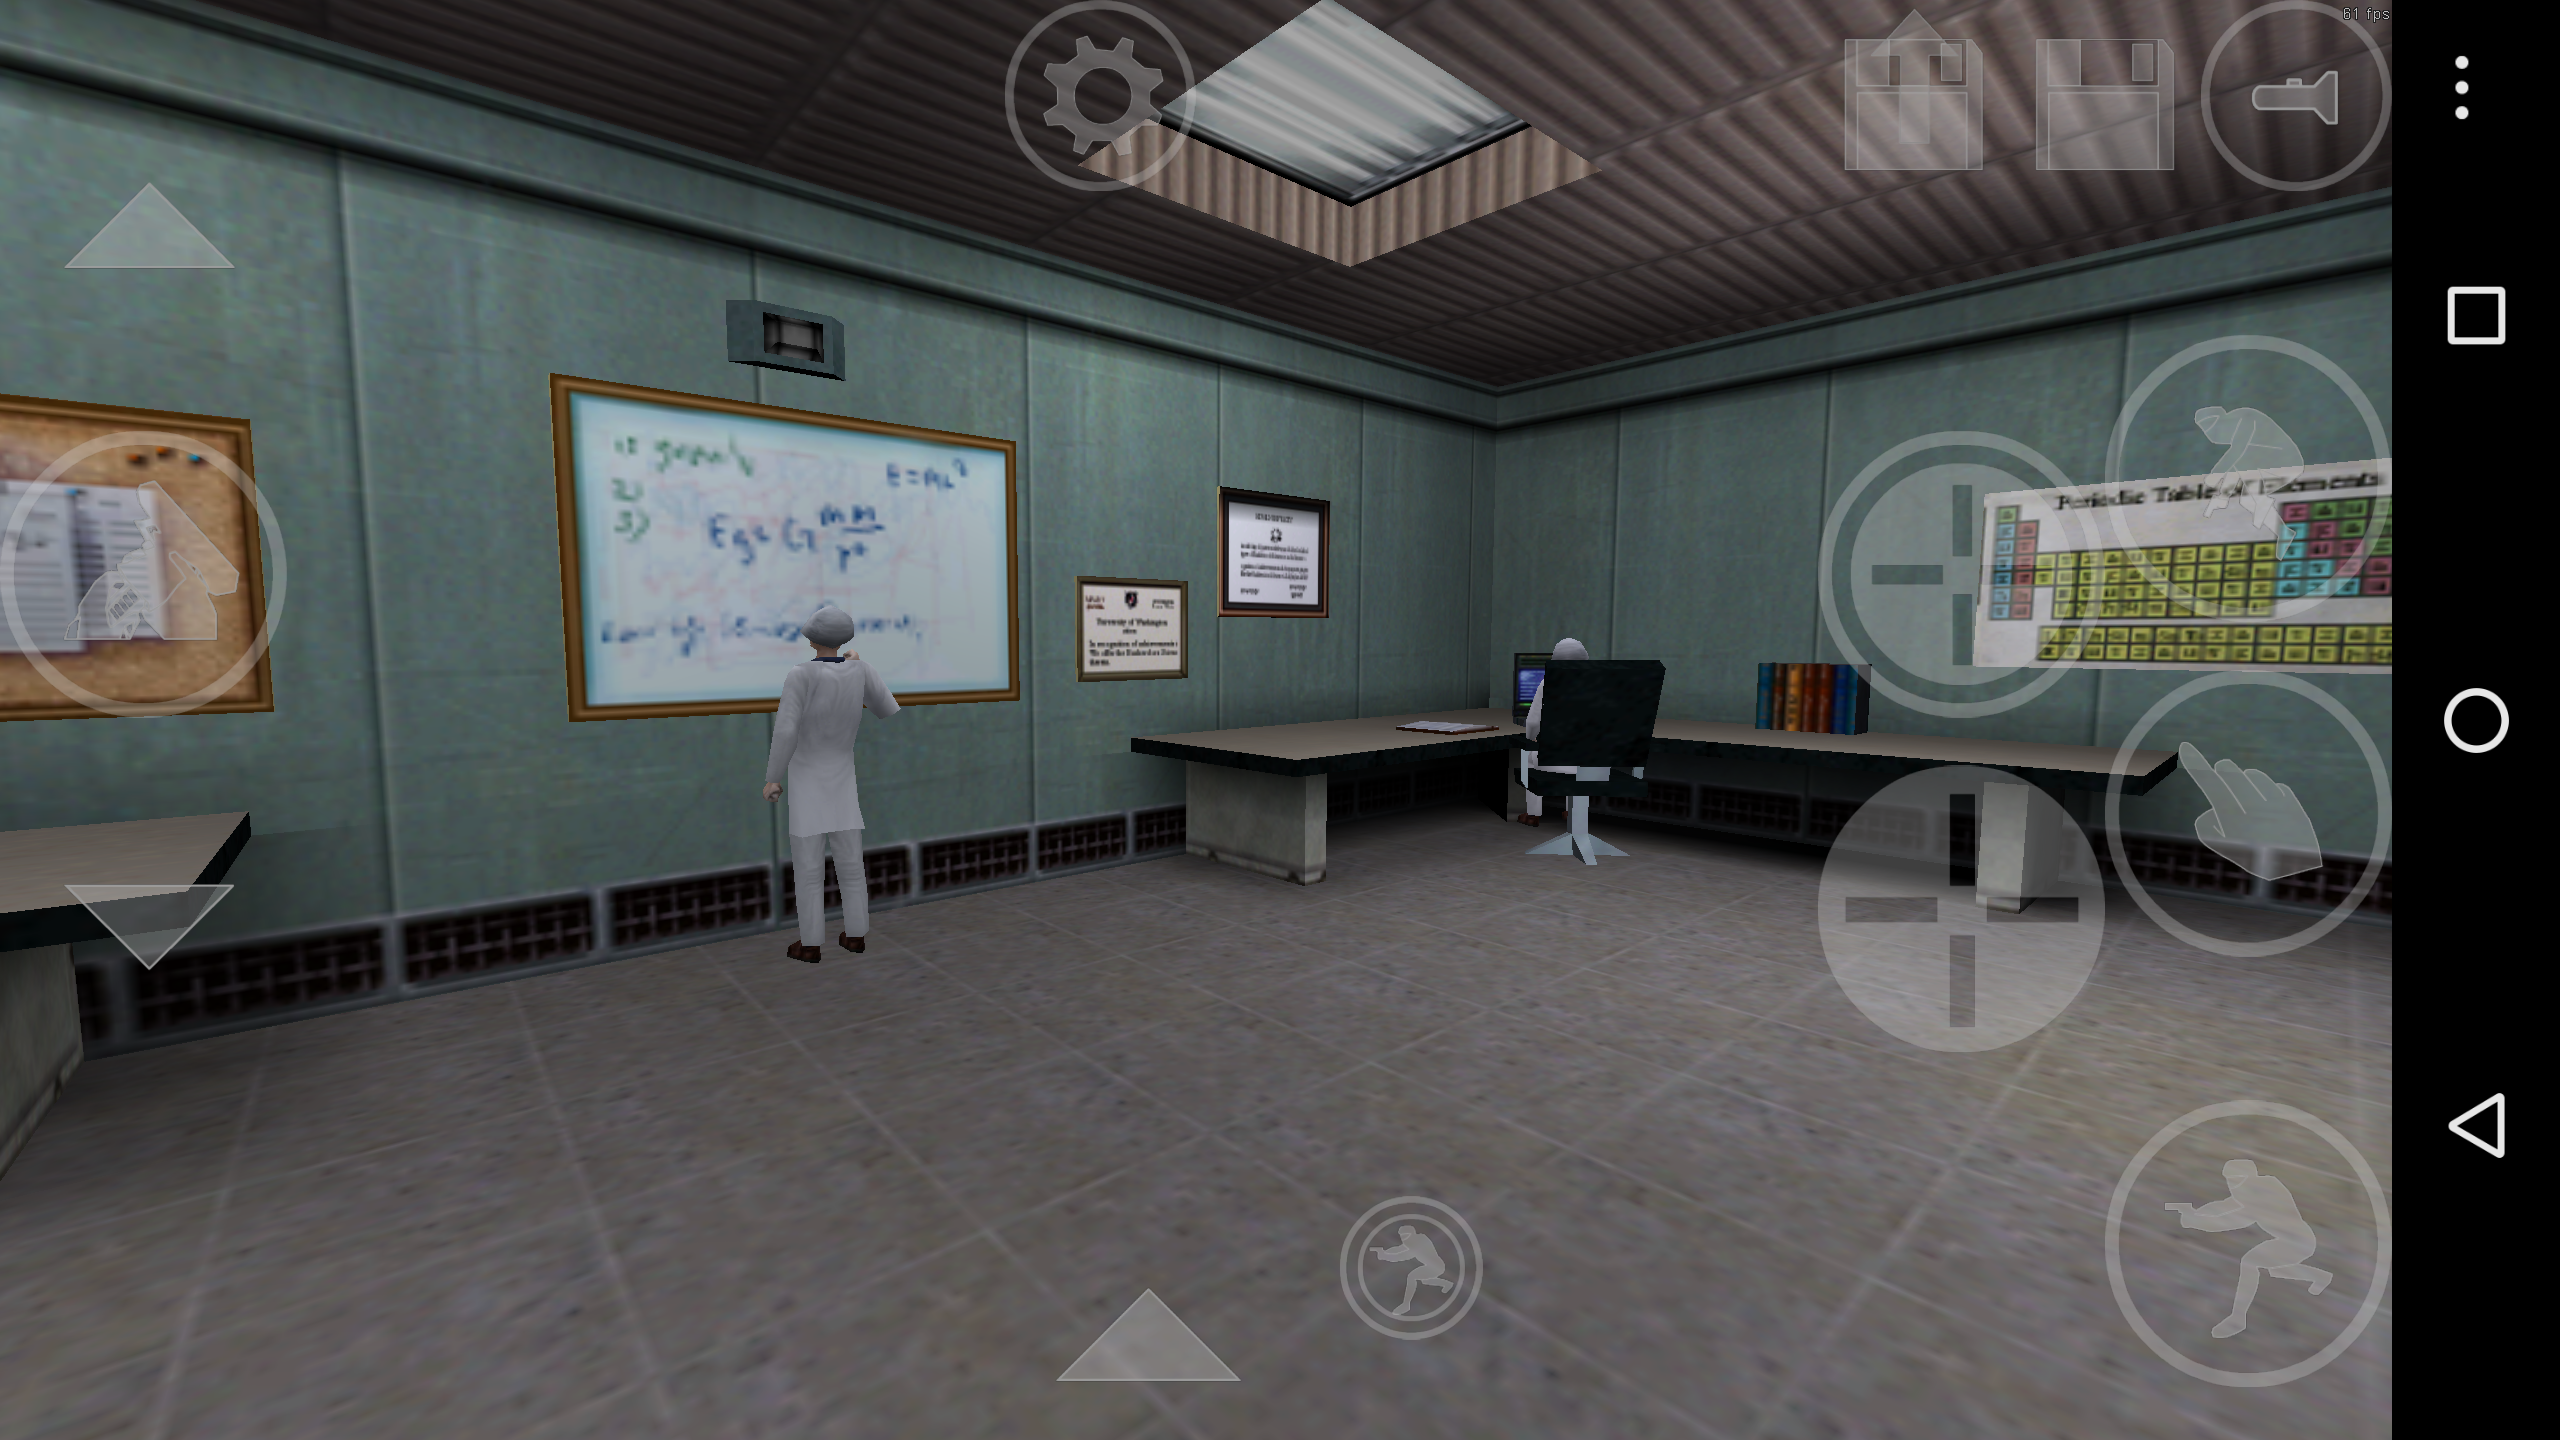 Awesome] Counter-Strike 1 6 Ported To Android, Available For